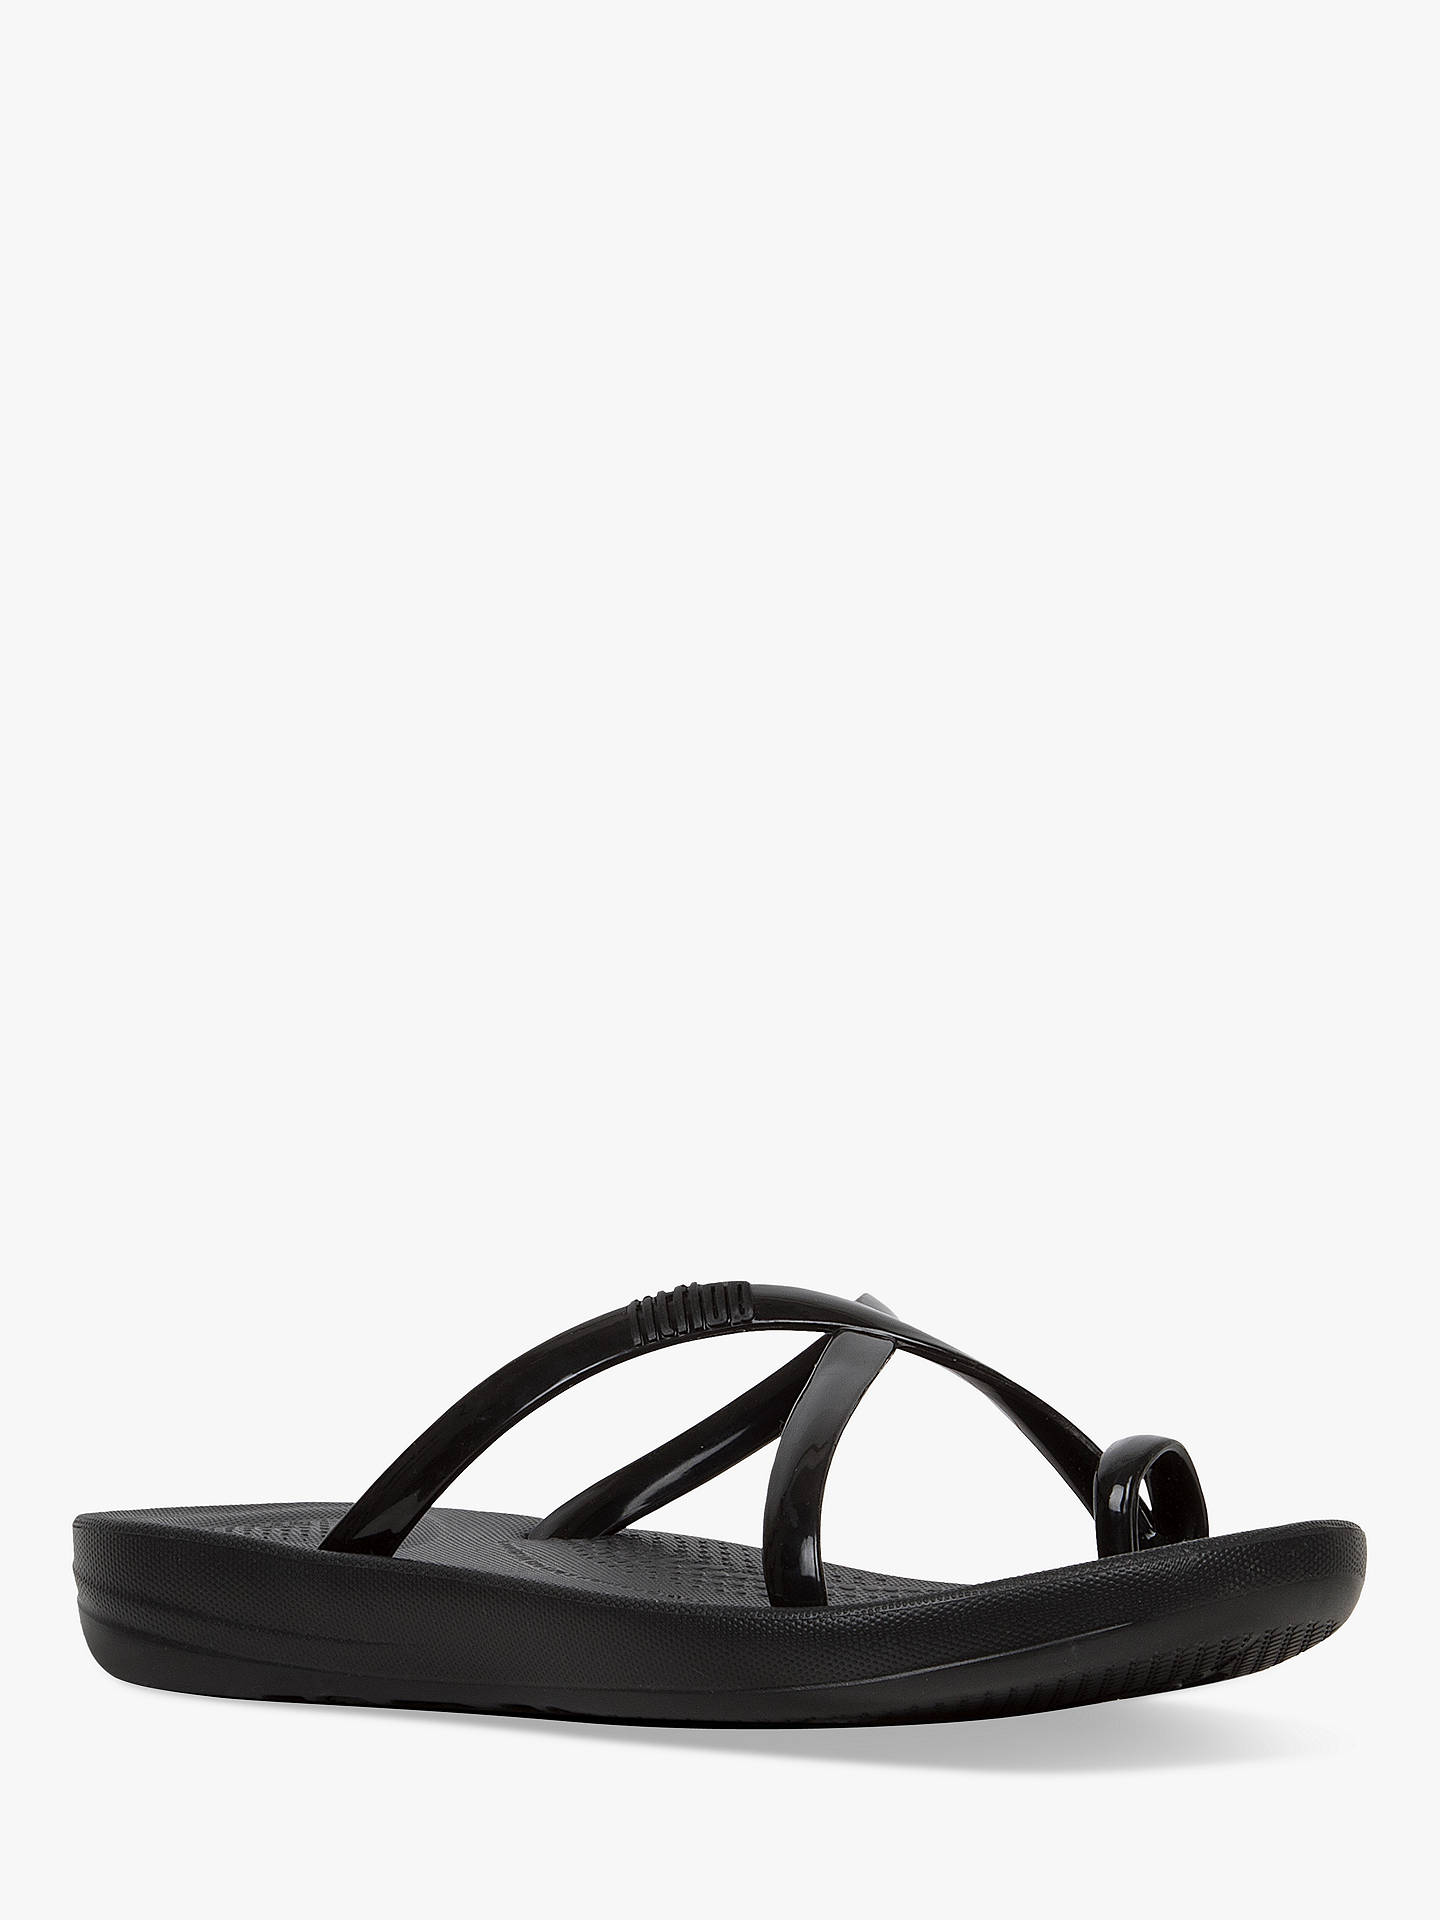 e90291aeb6 FitFlop Iqushion Wave Slide Sandals at John Lewis   Partners